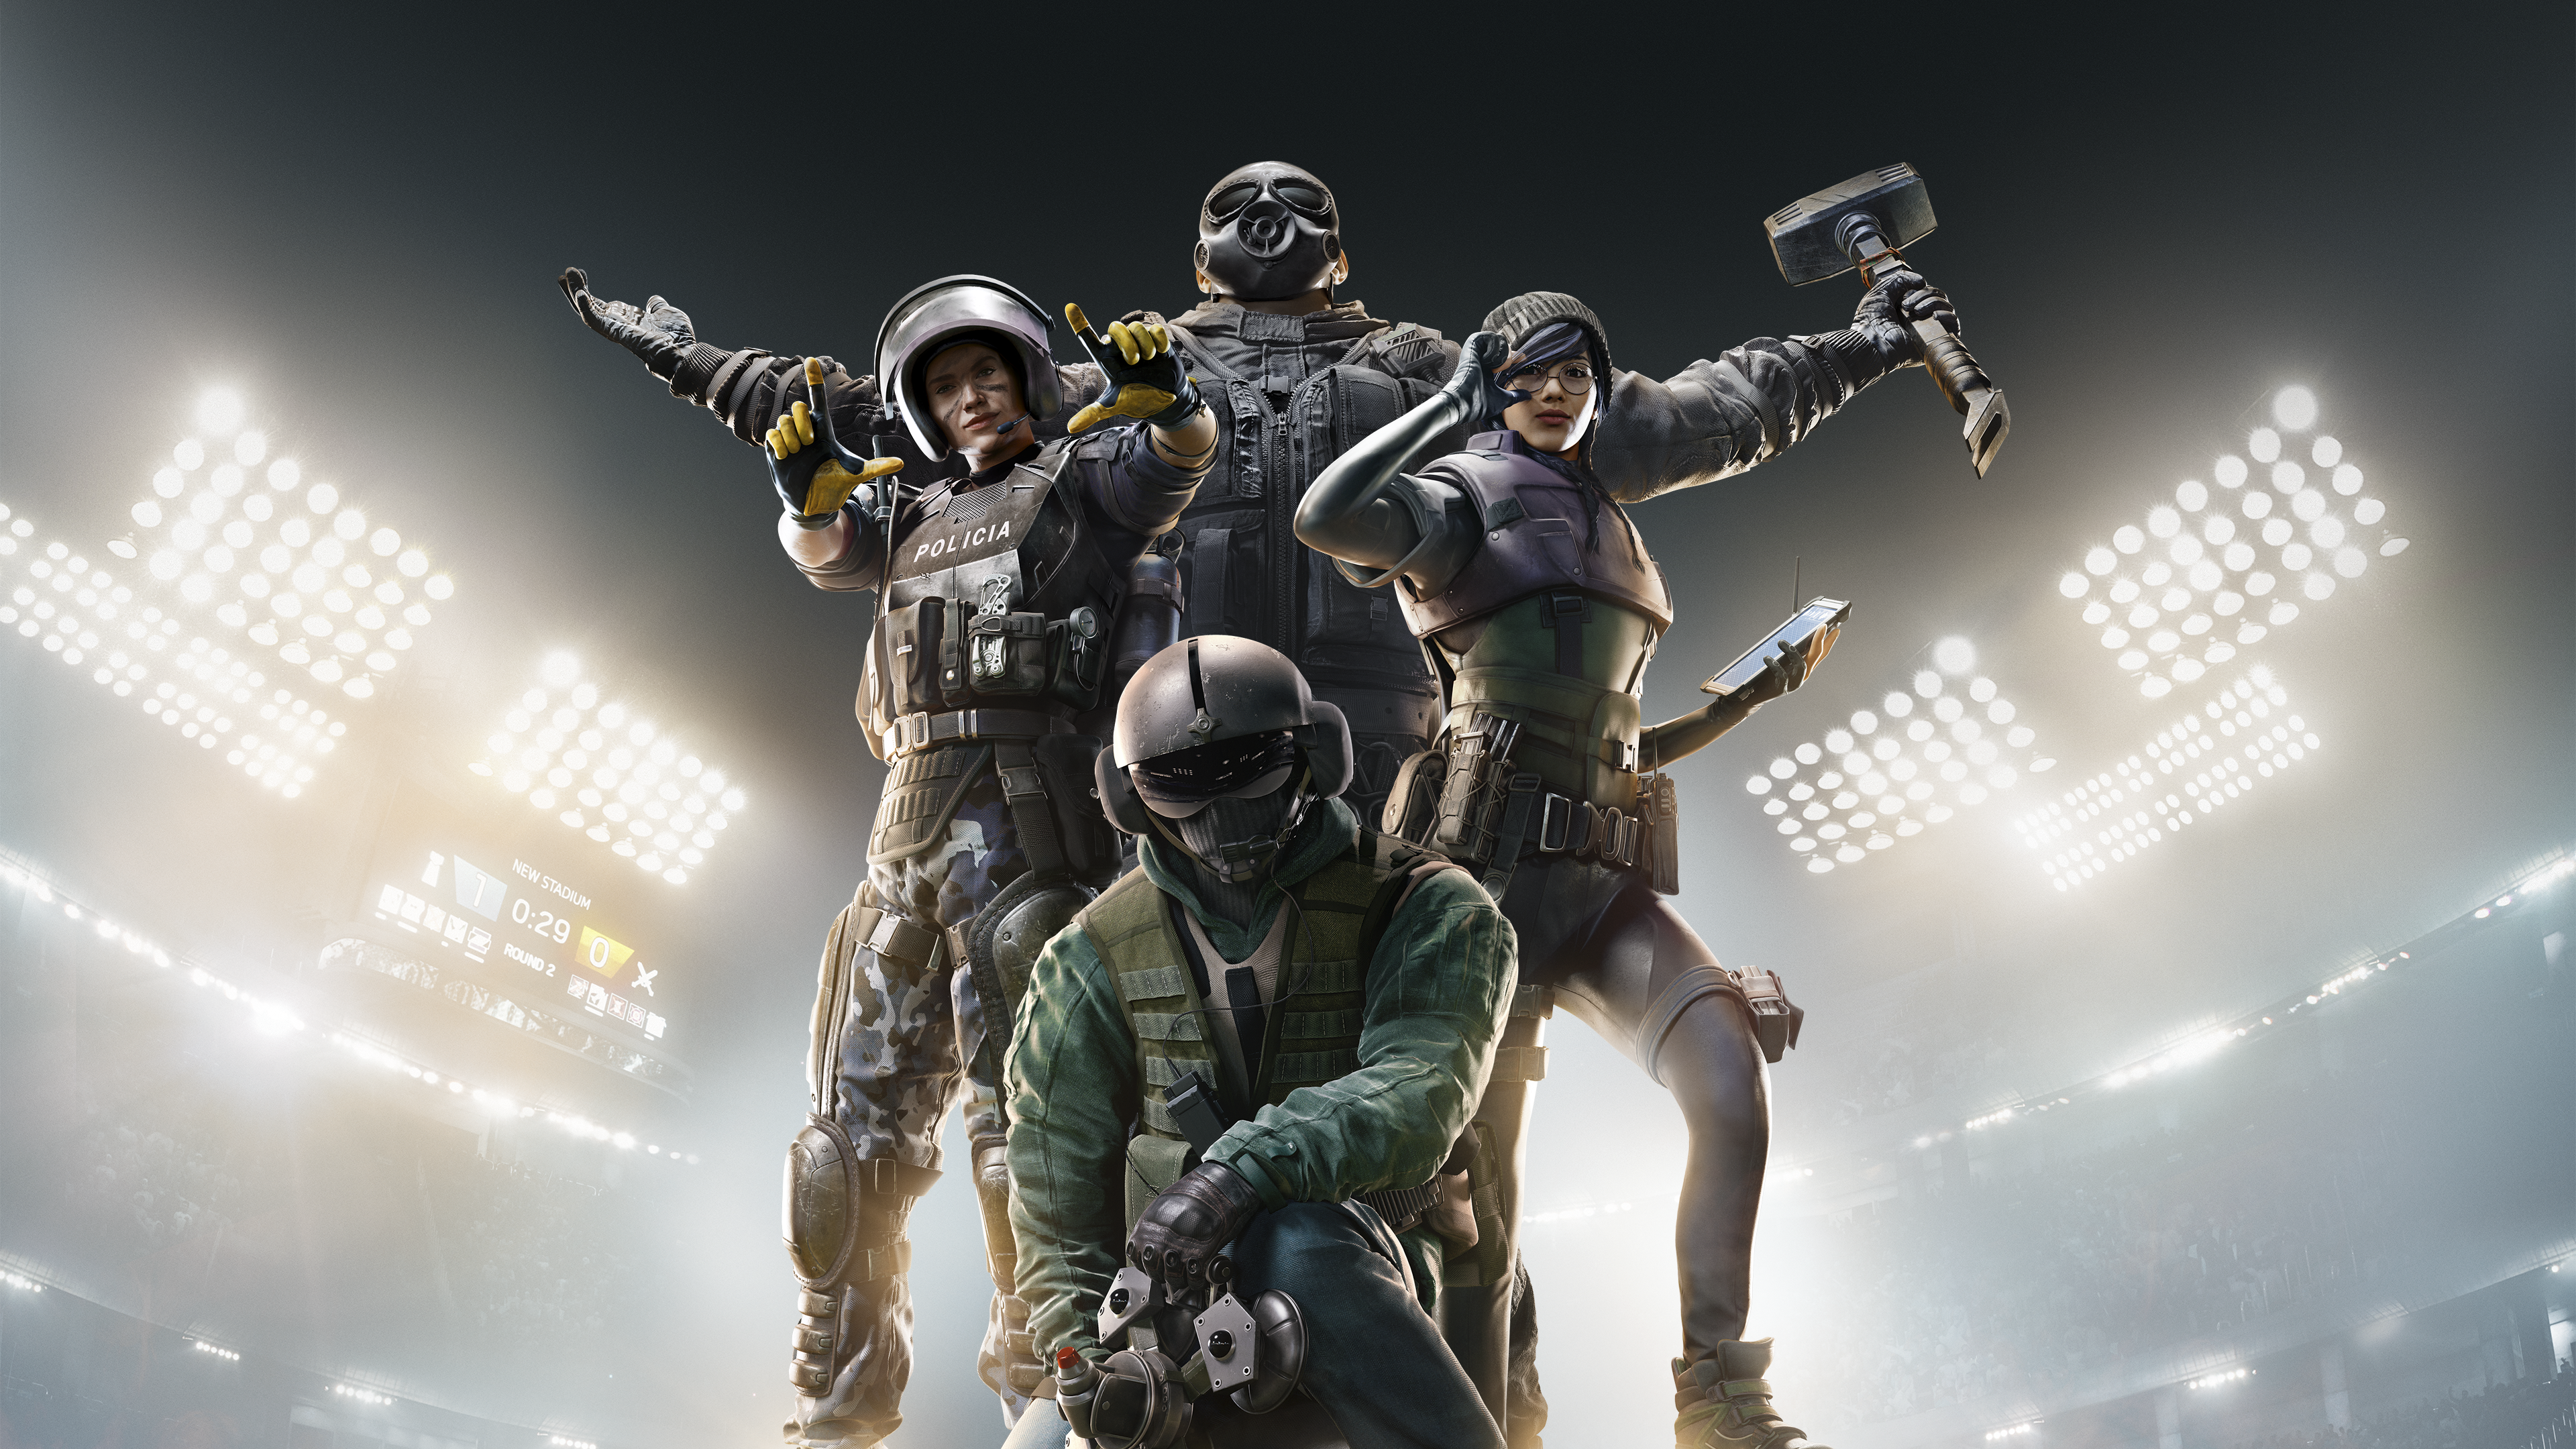 Tom Clancy's Rainbow Six Siege - ภาพหลัก